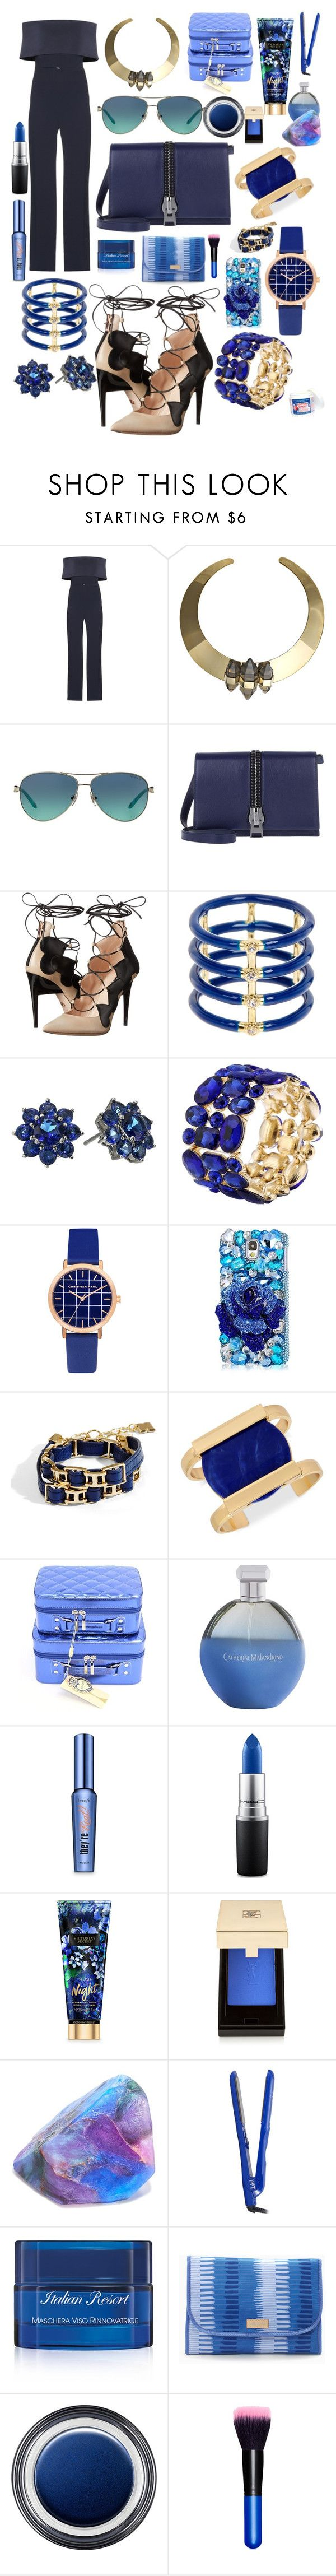 """Soft and Sexy www.voiceboxcouture.com"" by voiceboxcouture ❤ liked on Polyvore featuring Galvan, By Malene Birger, Tiffany & Co., Tom Ford, Ruthie Davis, Elizabeth and James, Nina, Samsung, BCBGMAXAZRIA and INC International Concepts"